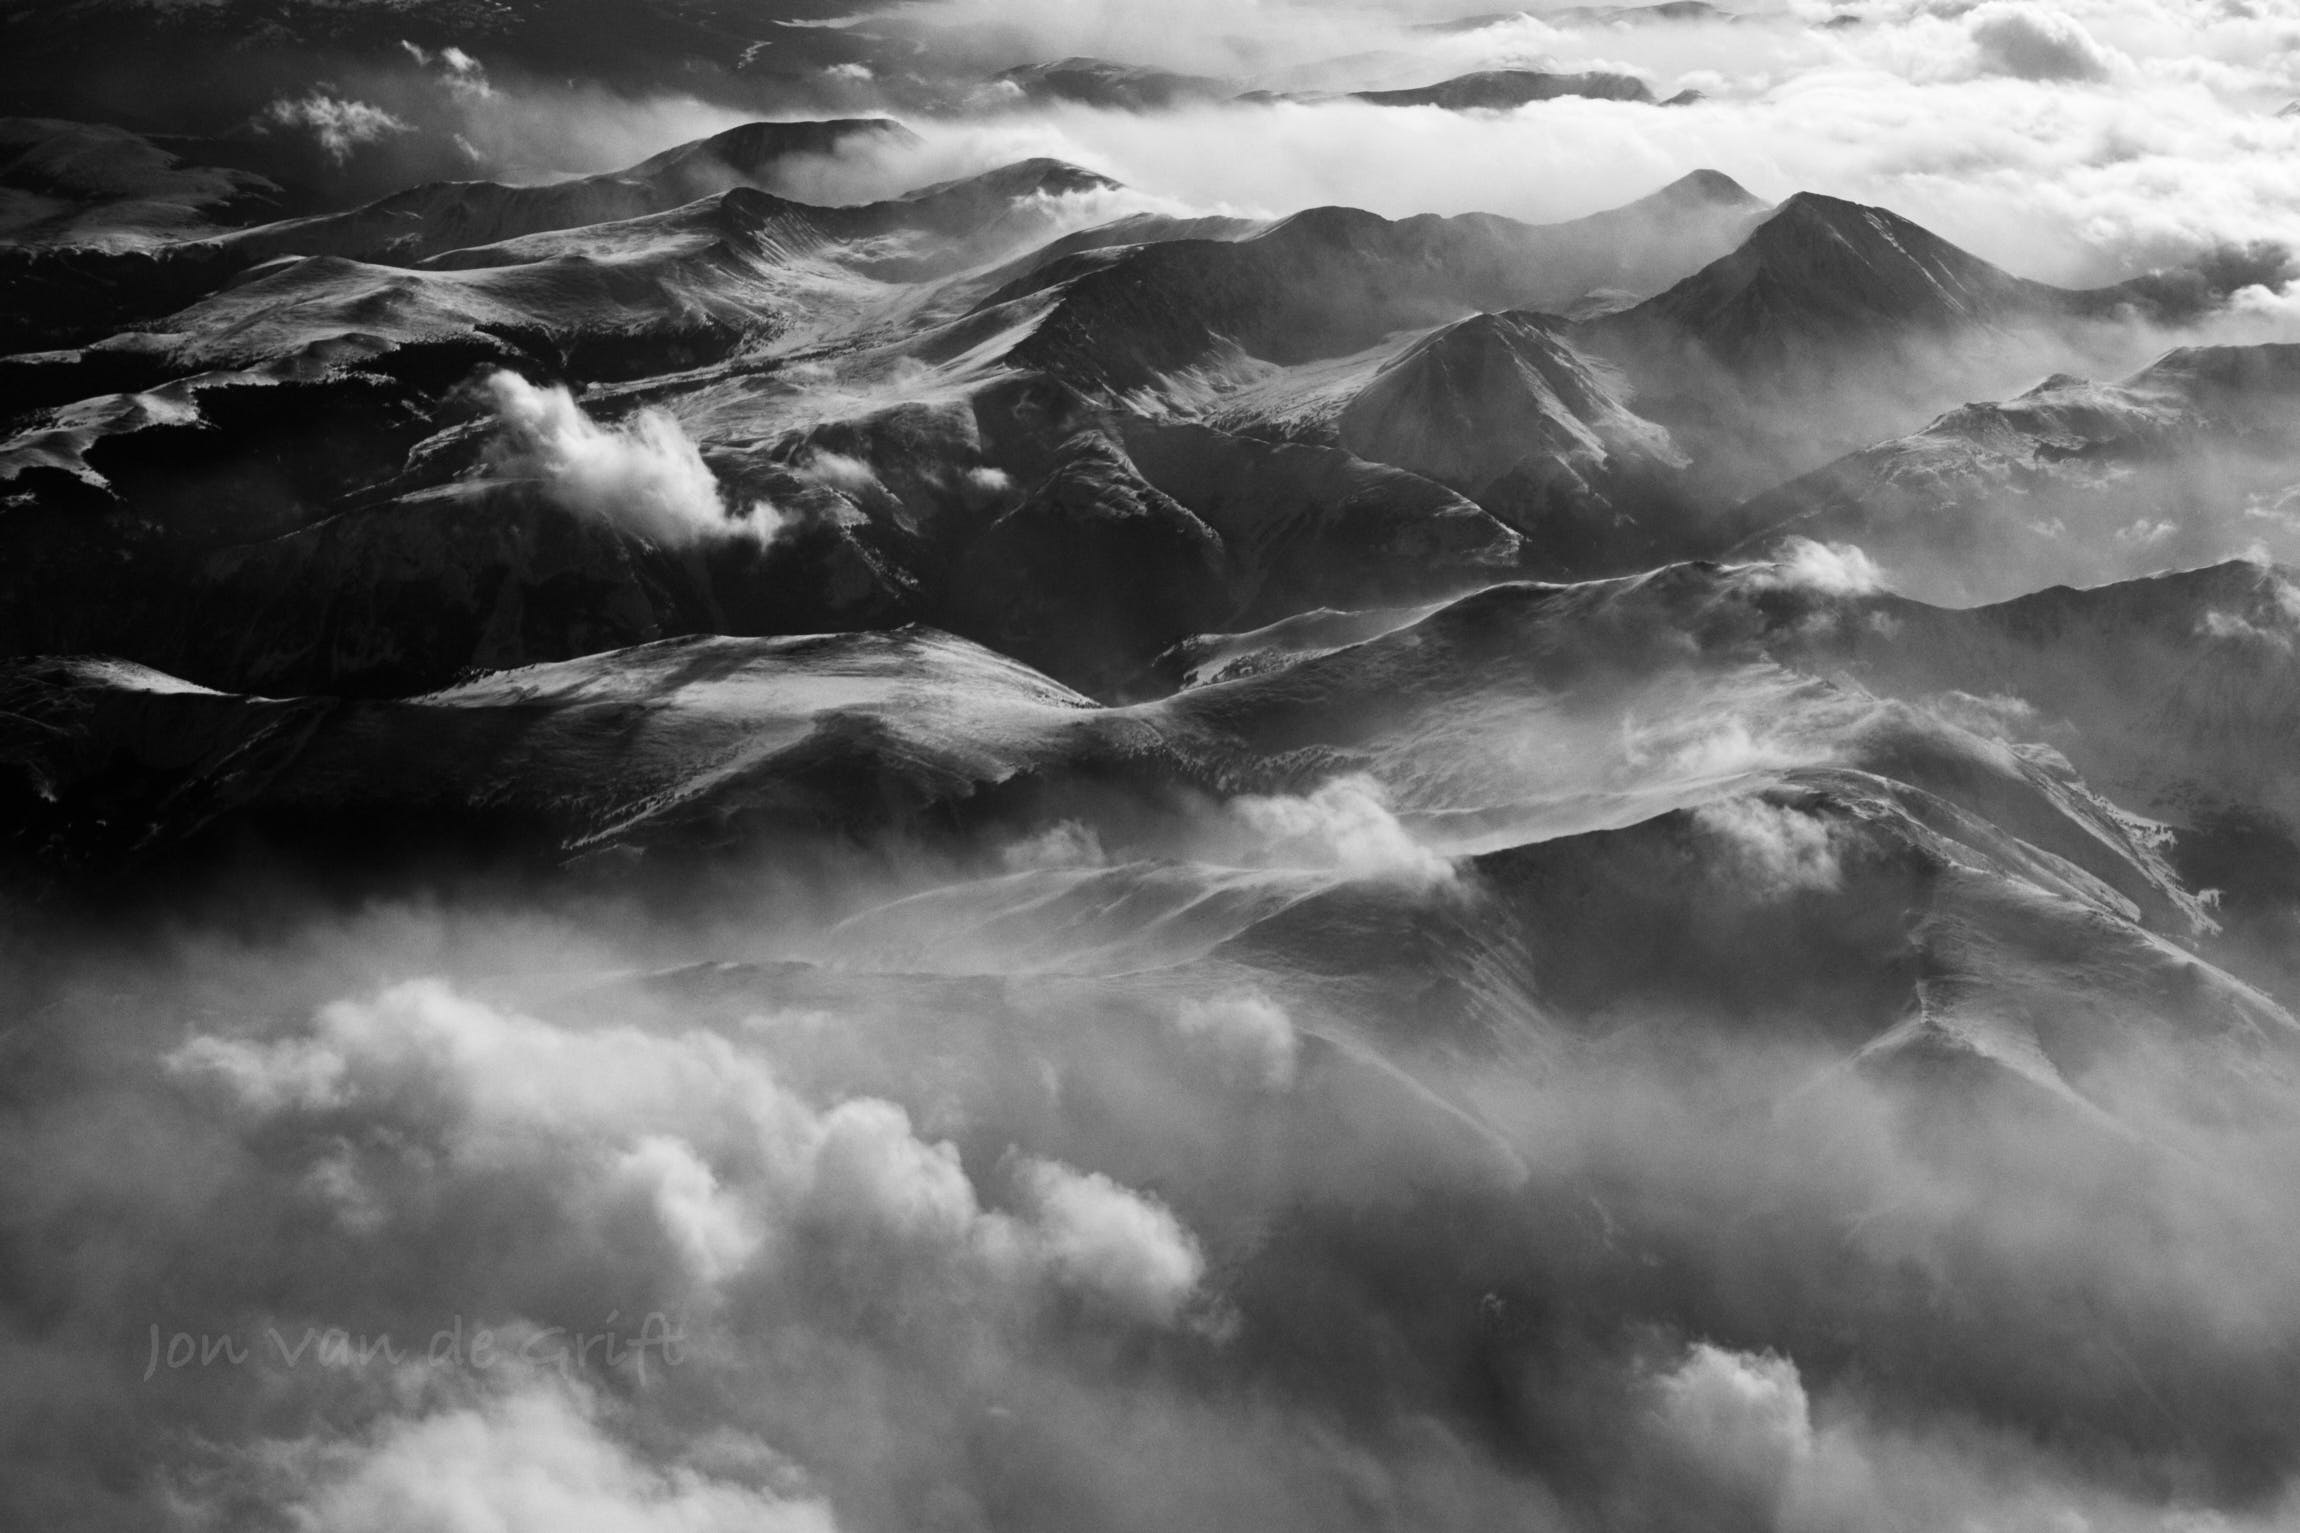 Black and white aerial photograph of clouds near sunset over a mountain range in winter, captured with a Leica camera.